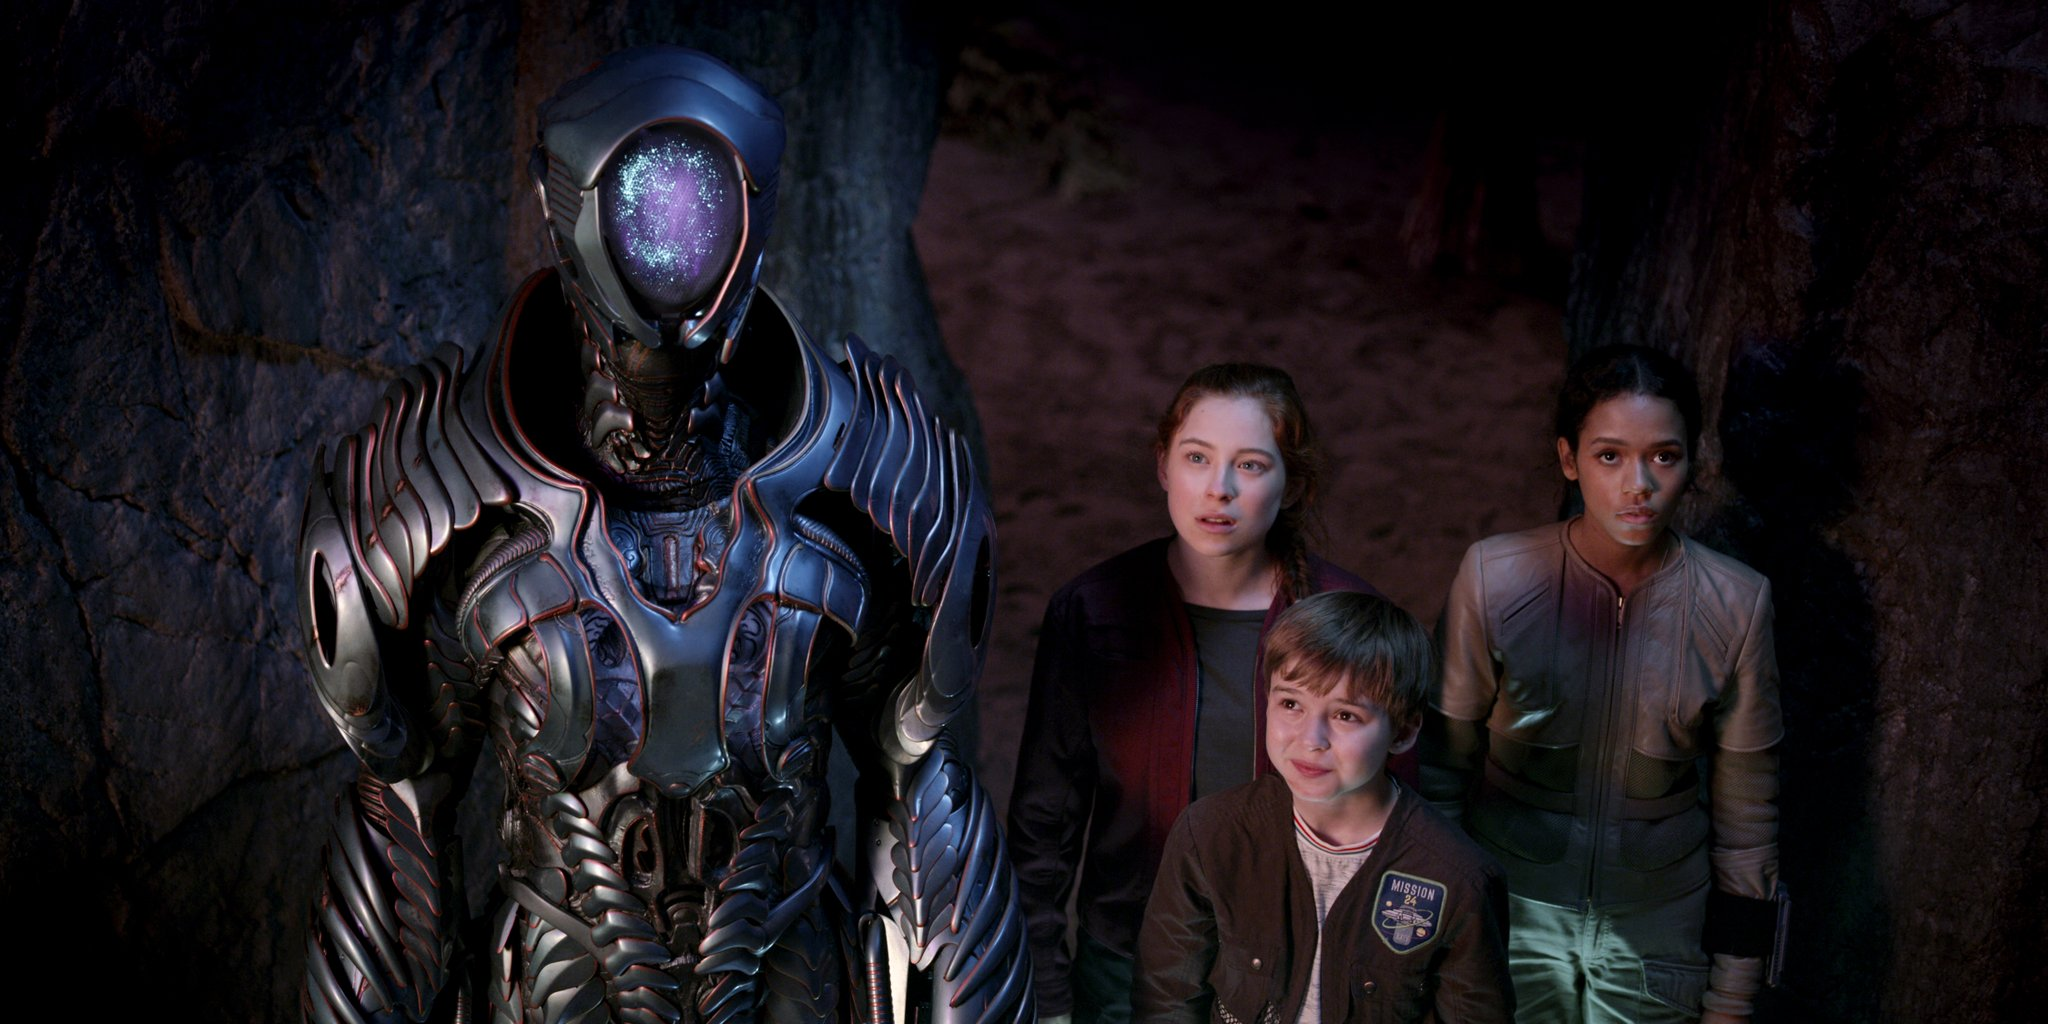 Who Plays the Robot in Lost in Space? | POPSUGAR Entertainment